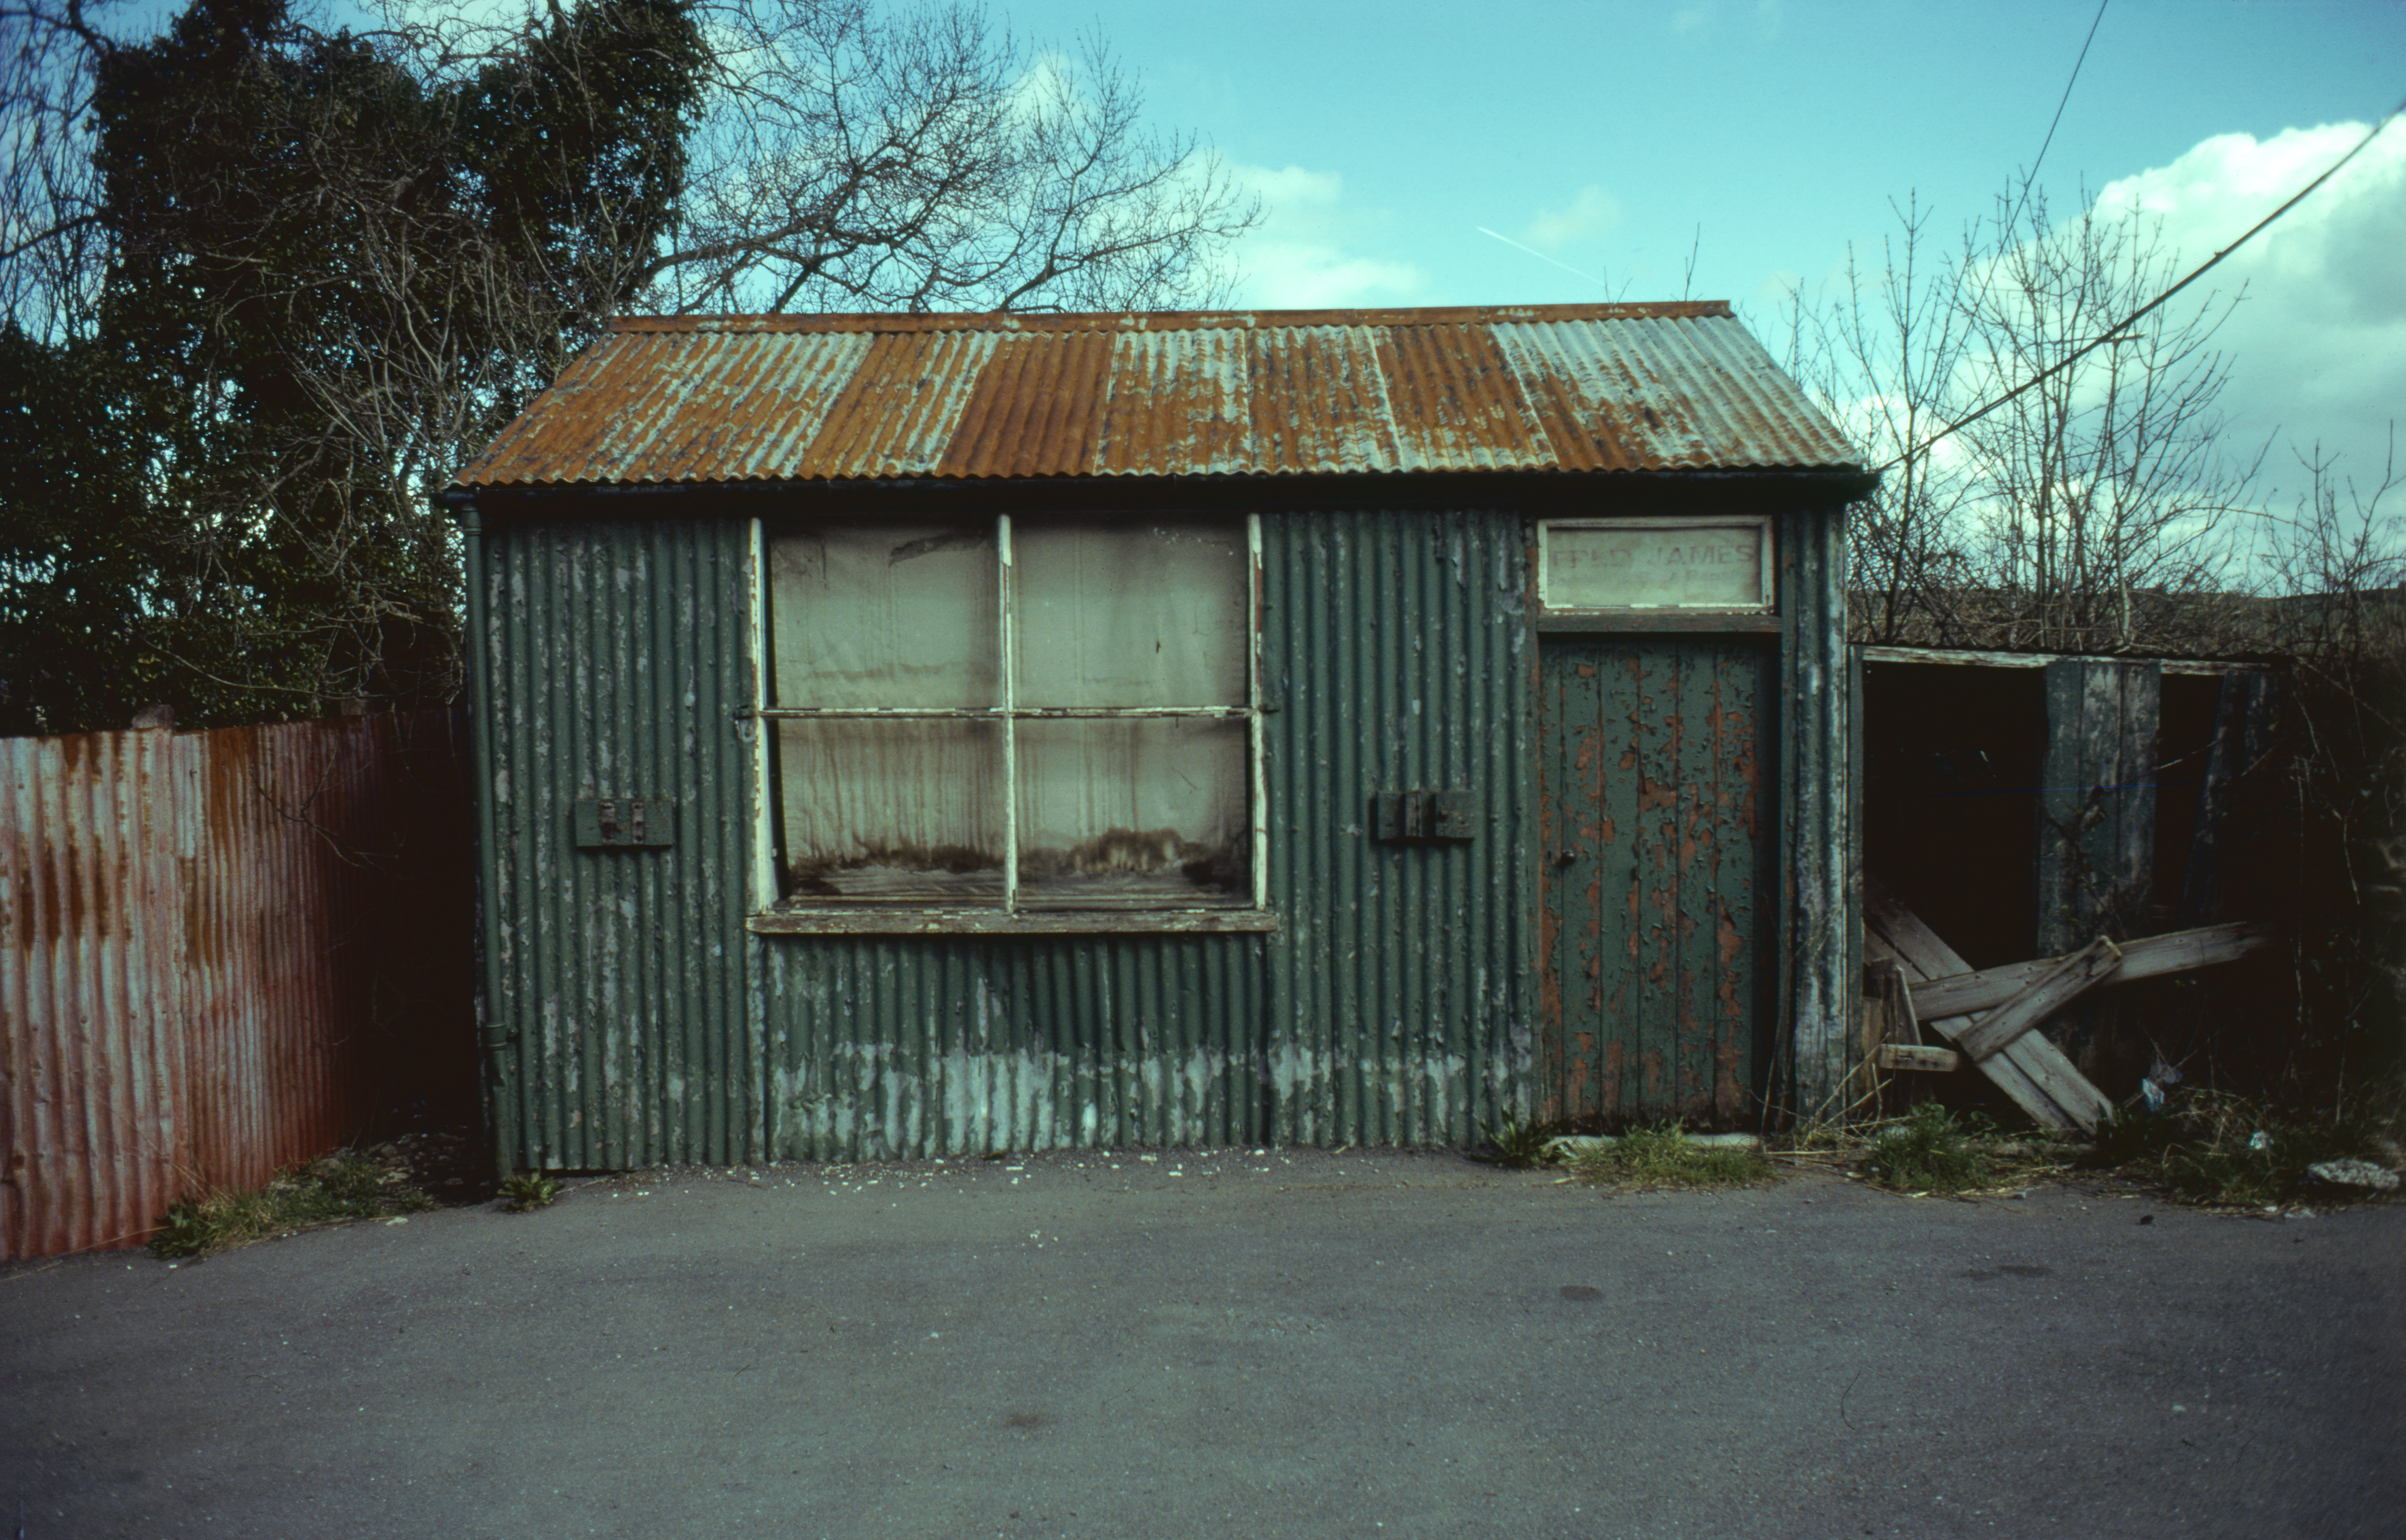 The Saddler's workshop prior to removal to St Fagans National Museum of History